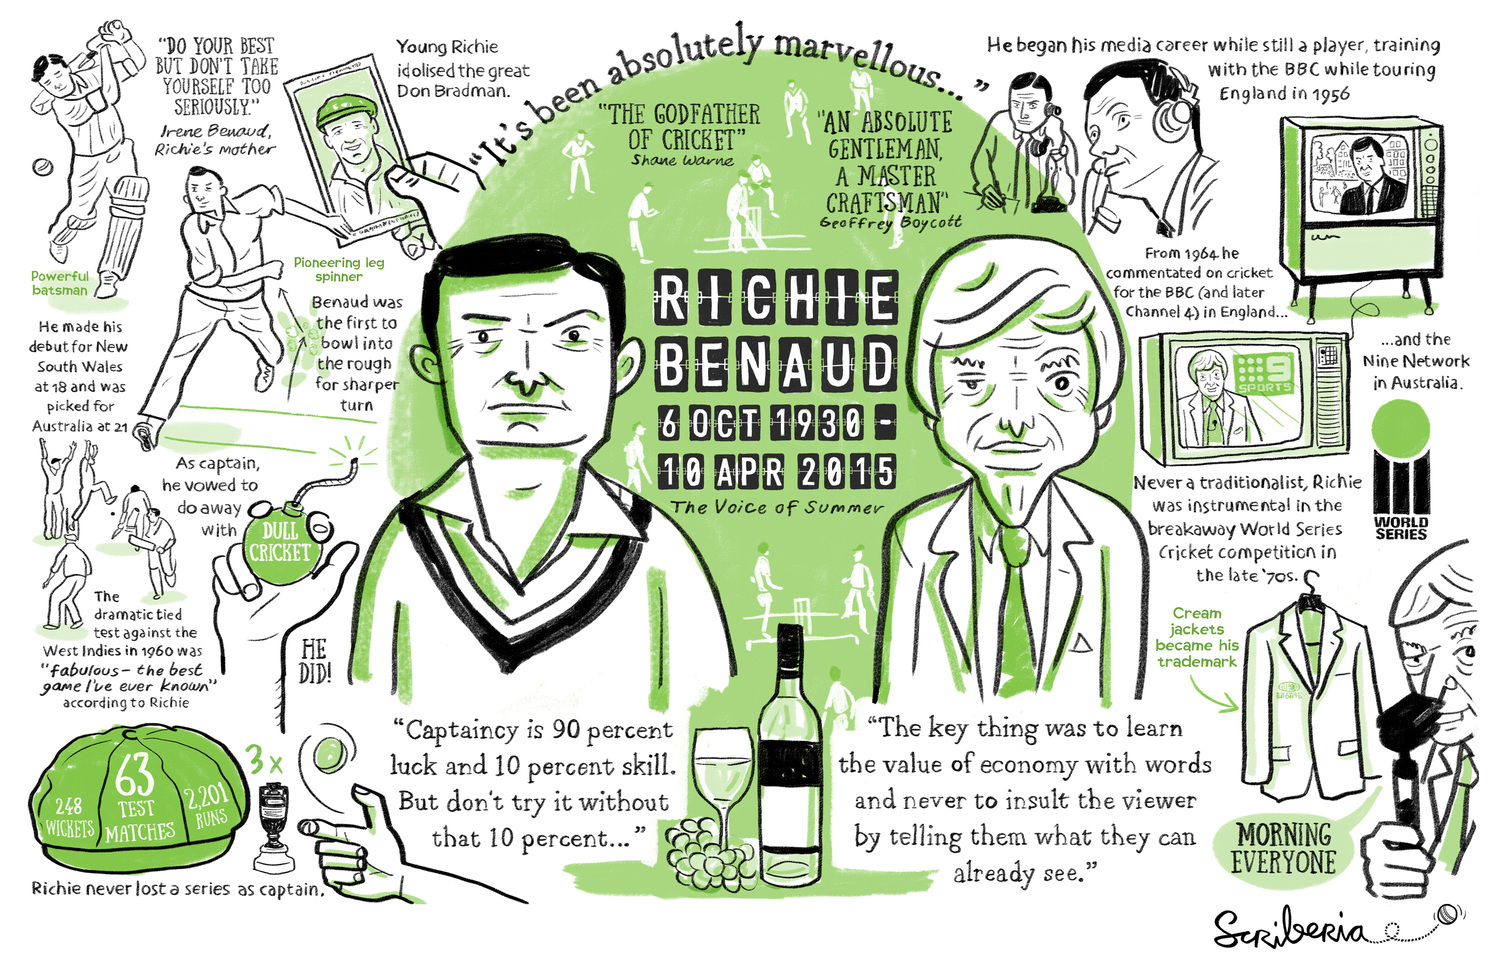 scriberia scribing richie benaud cricket